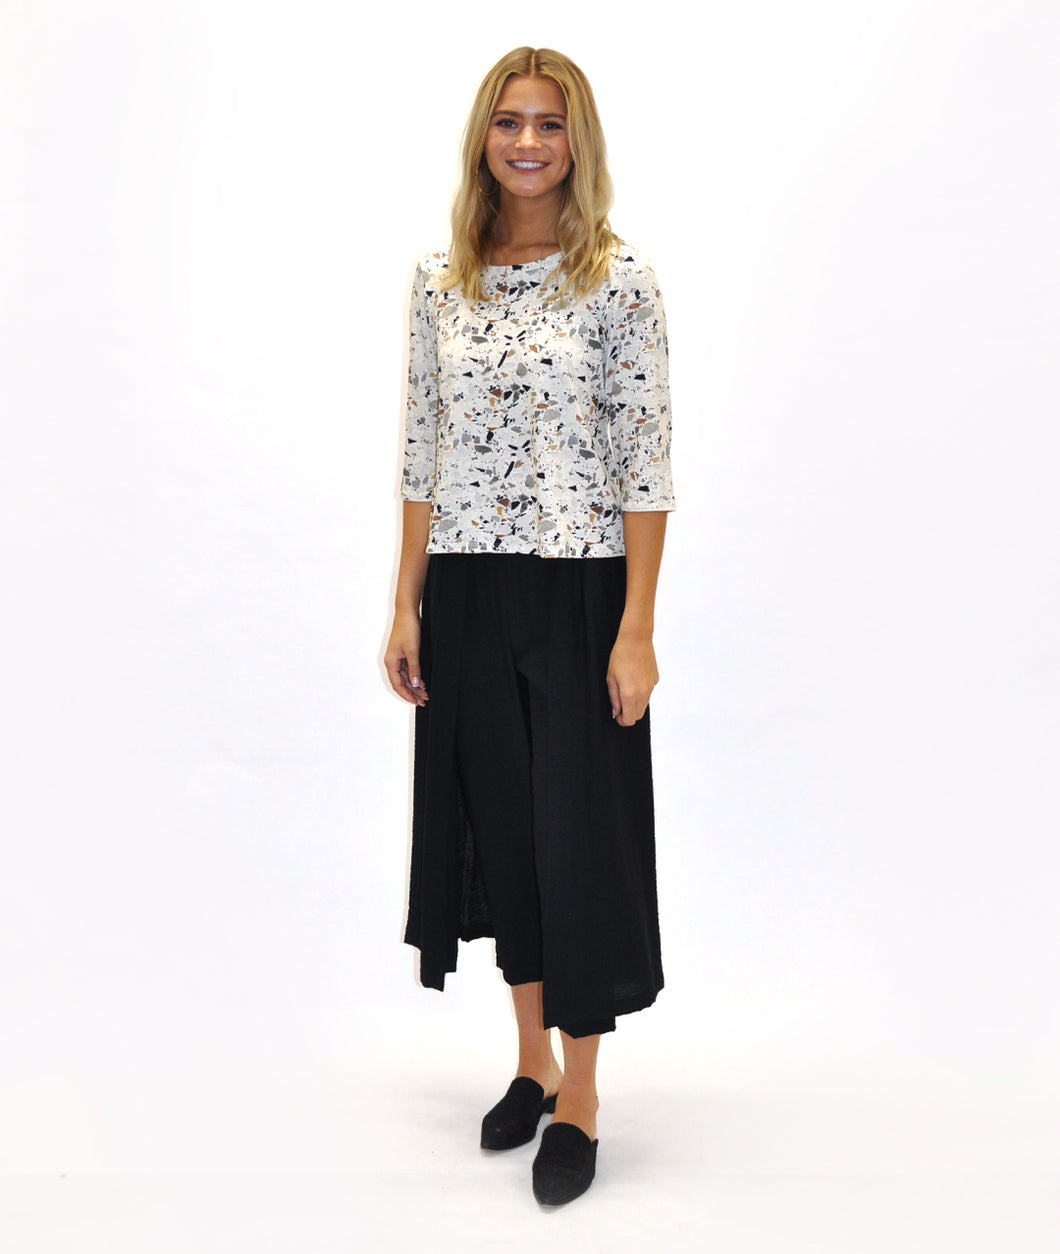 model in a black pant with a terrazzo print tee, in front of a white background